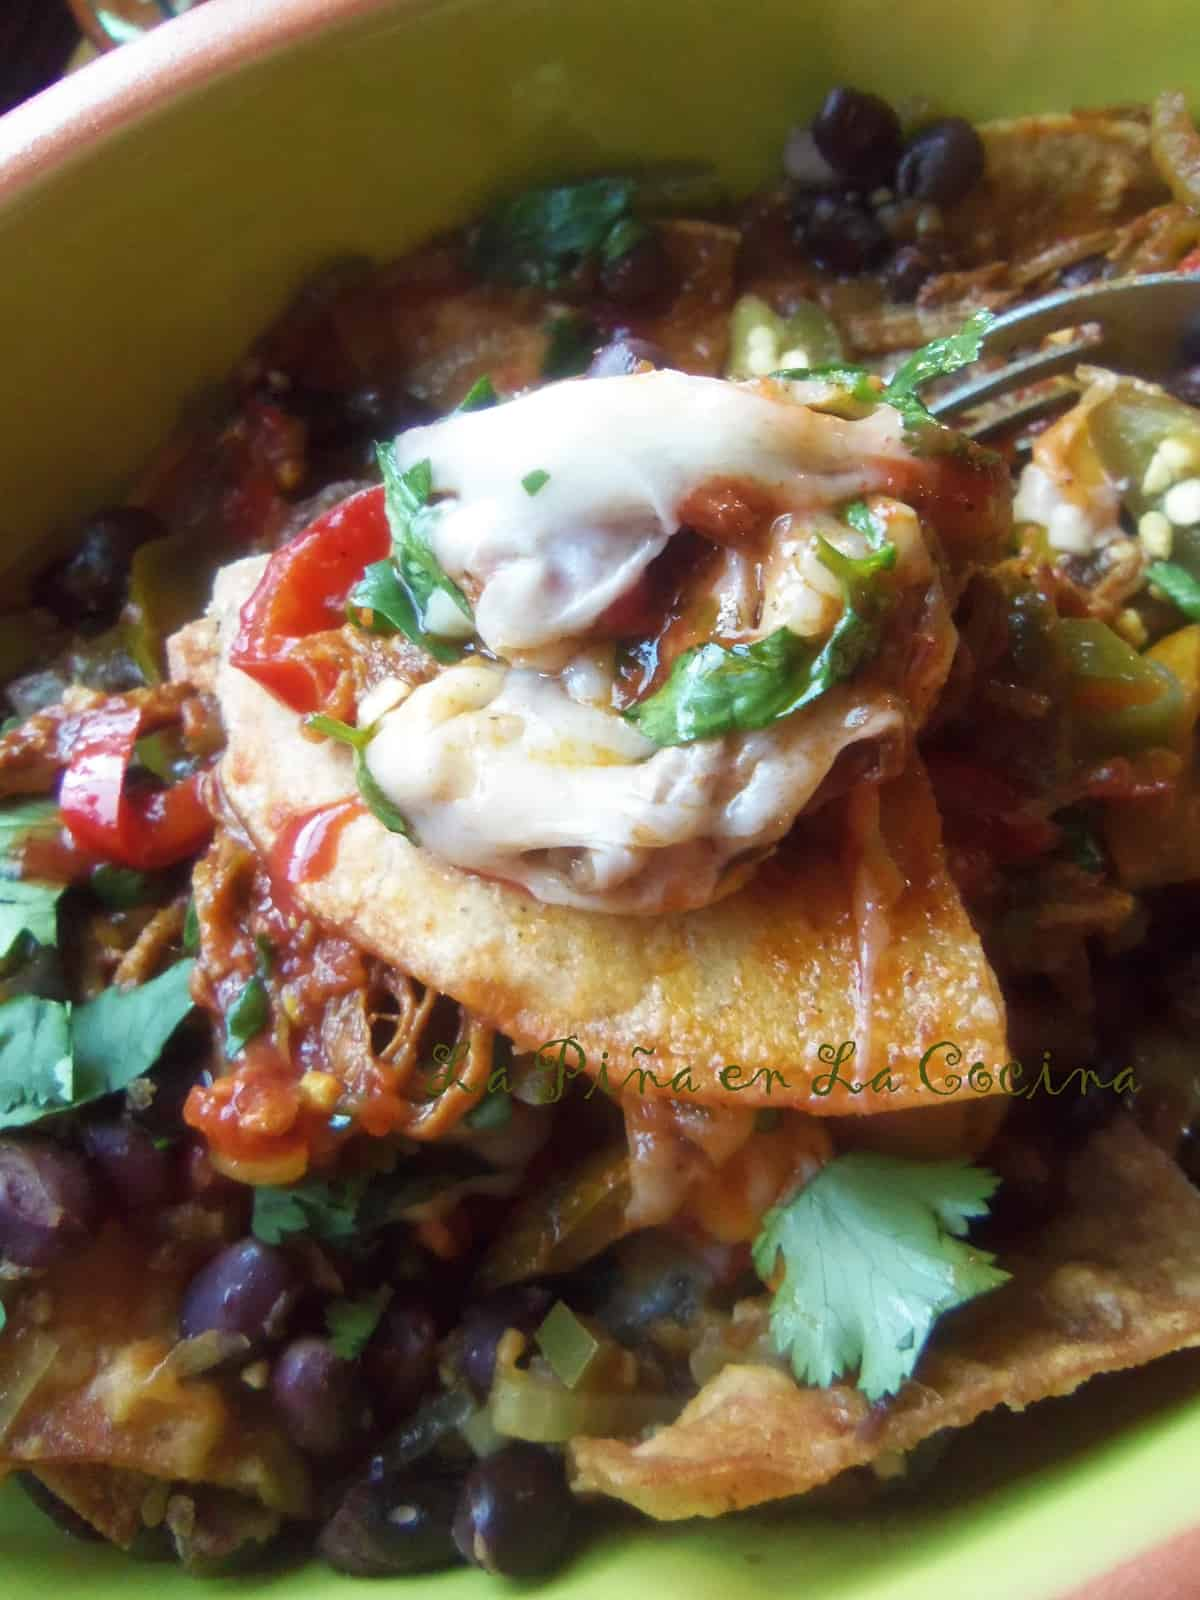 Using homemade chips or a good quality store bought chip, this is a tasty twist on traditional Tex Mex Nachos.